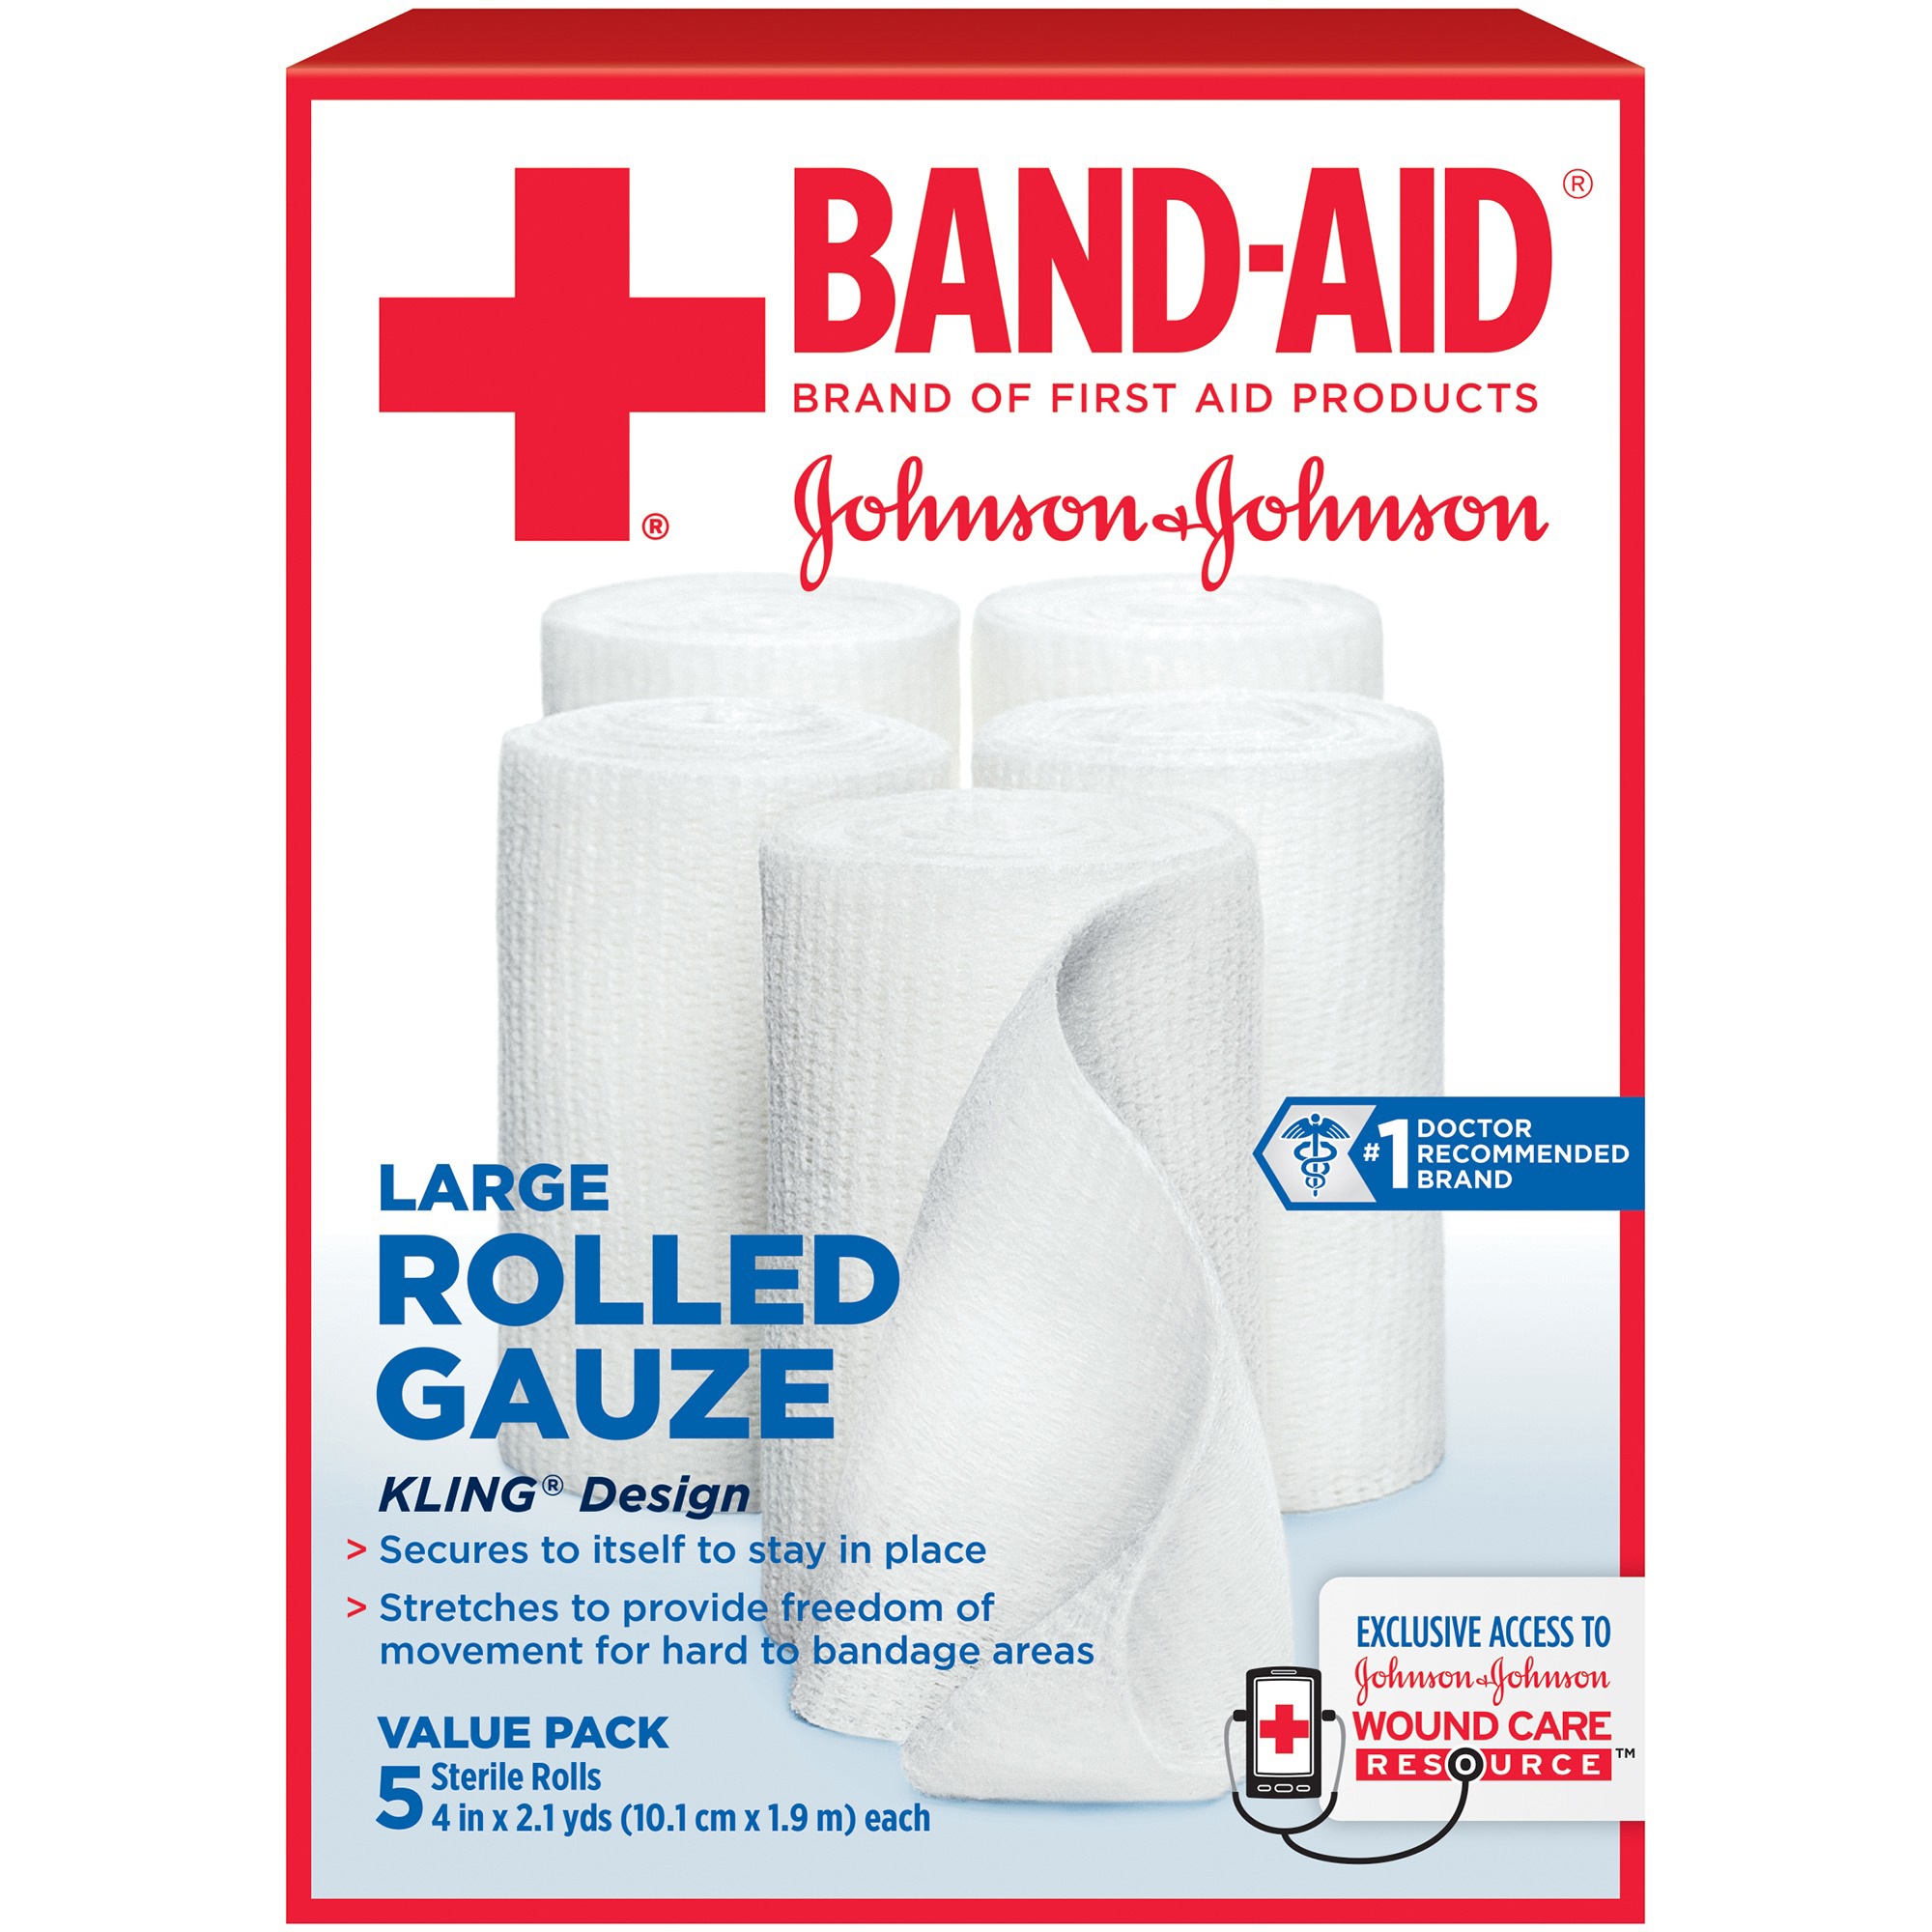 Band-Aid Brand of First Aid Products Rolled Gauze, 4Inches by 2.1 Yards, 5 Count Value Pack